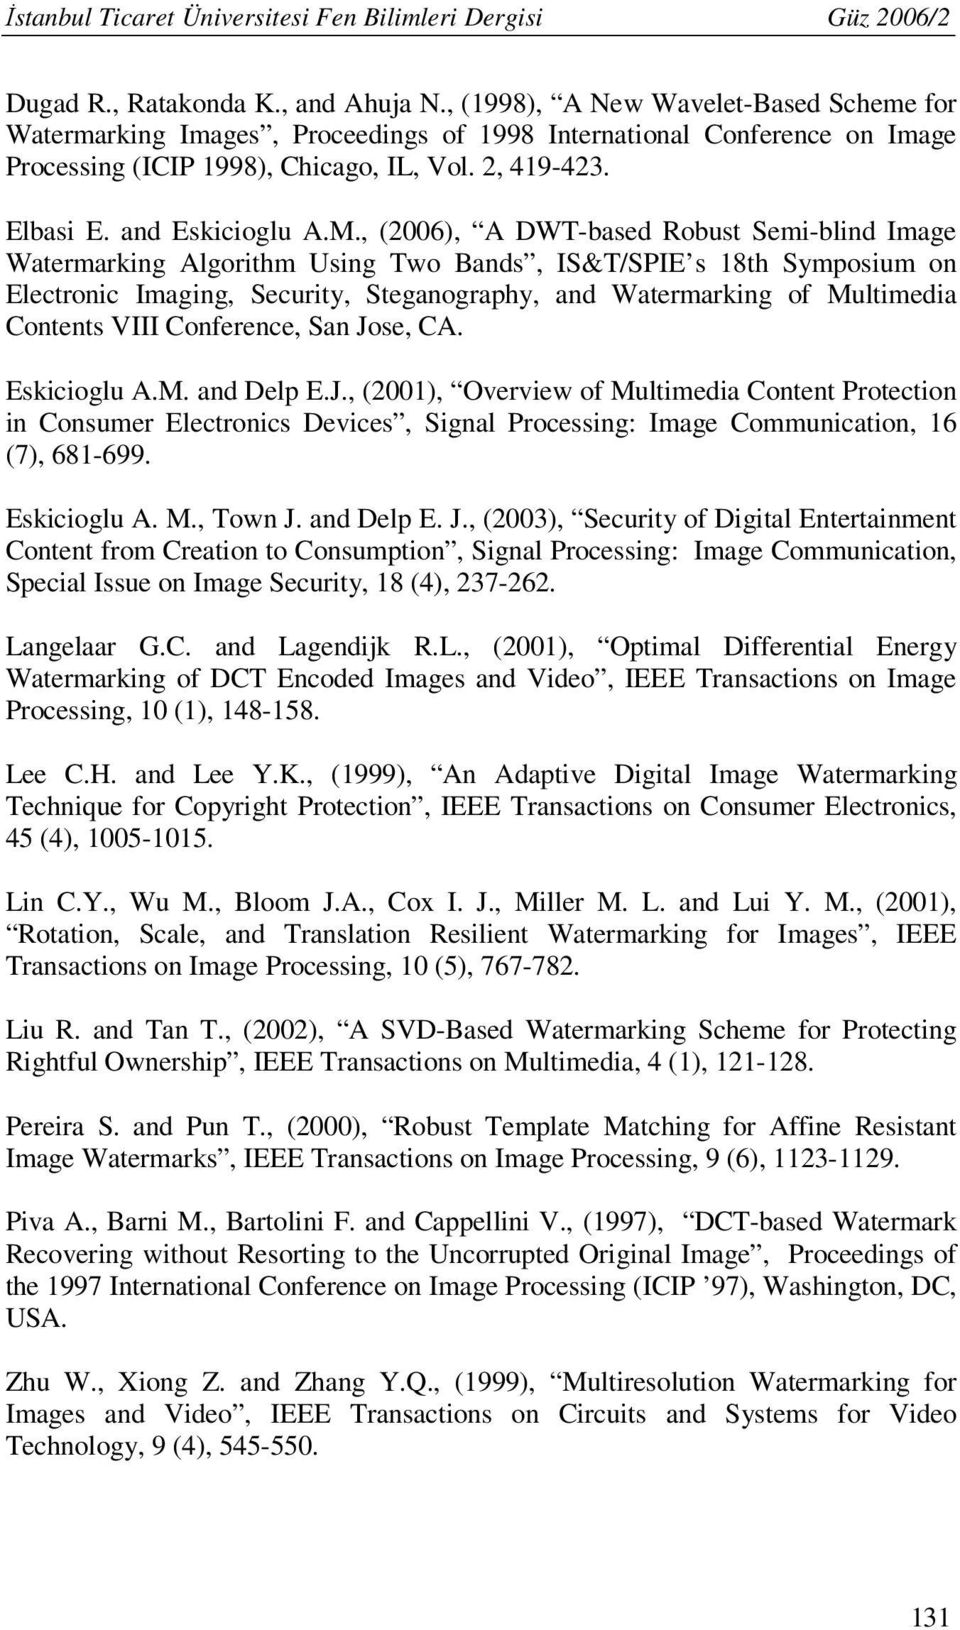 , (2006), A DWT-based Robust Semi-blind Image Watermarking Algorithm Using Two Bands, IS&T/SPIE s 18th Symposium on Electronic Imaging, Security, Steganography, and Watermarking of Multimedia